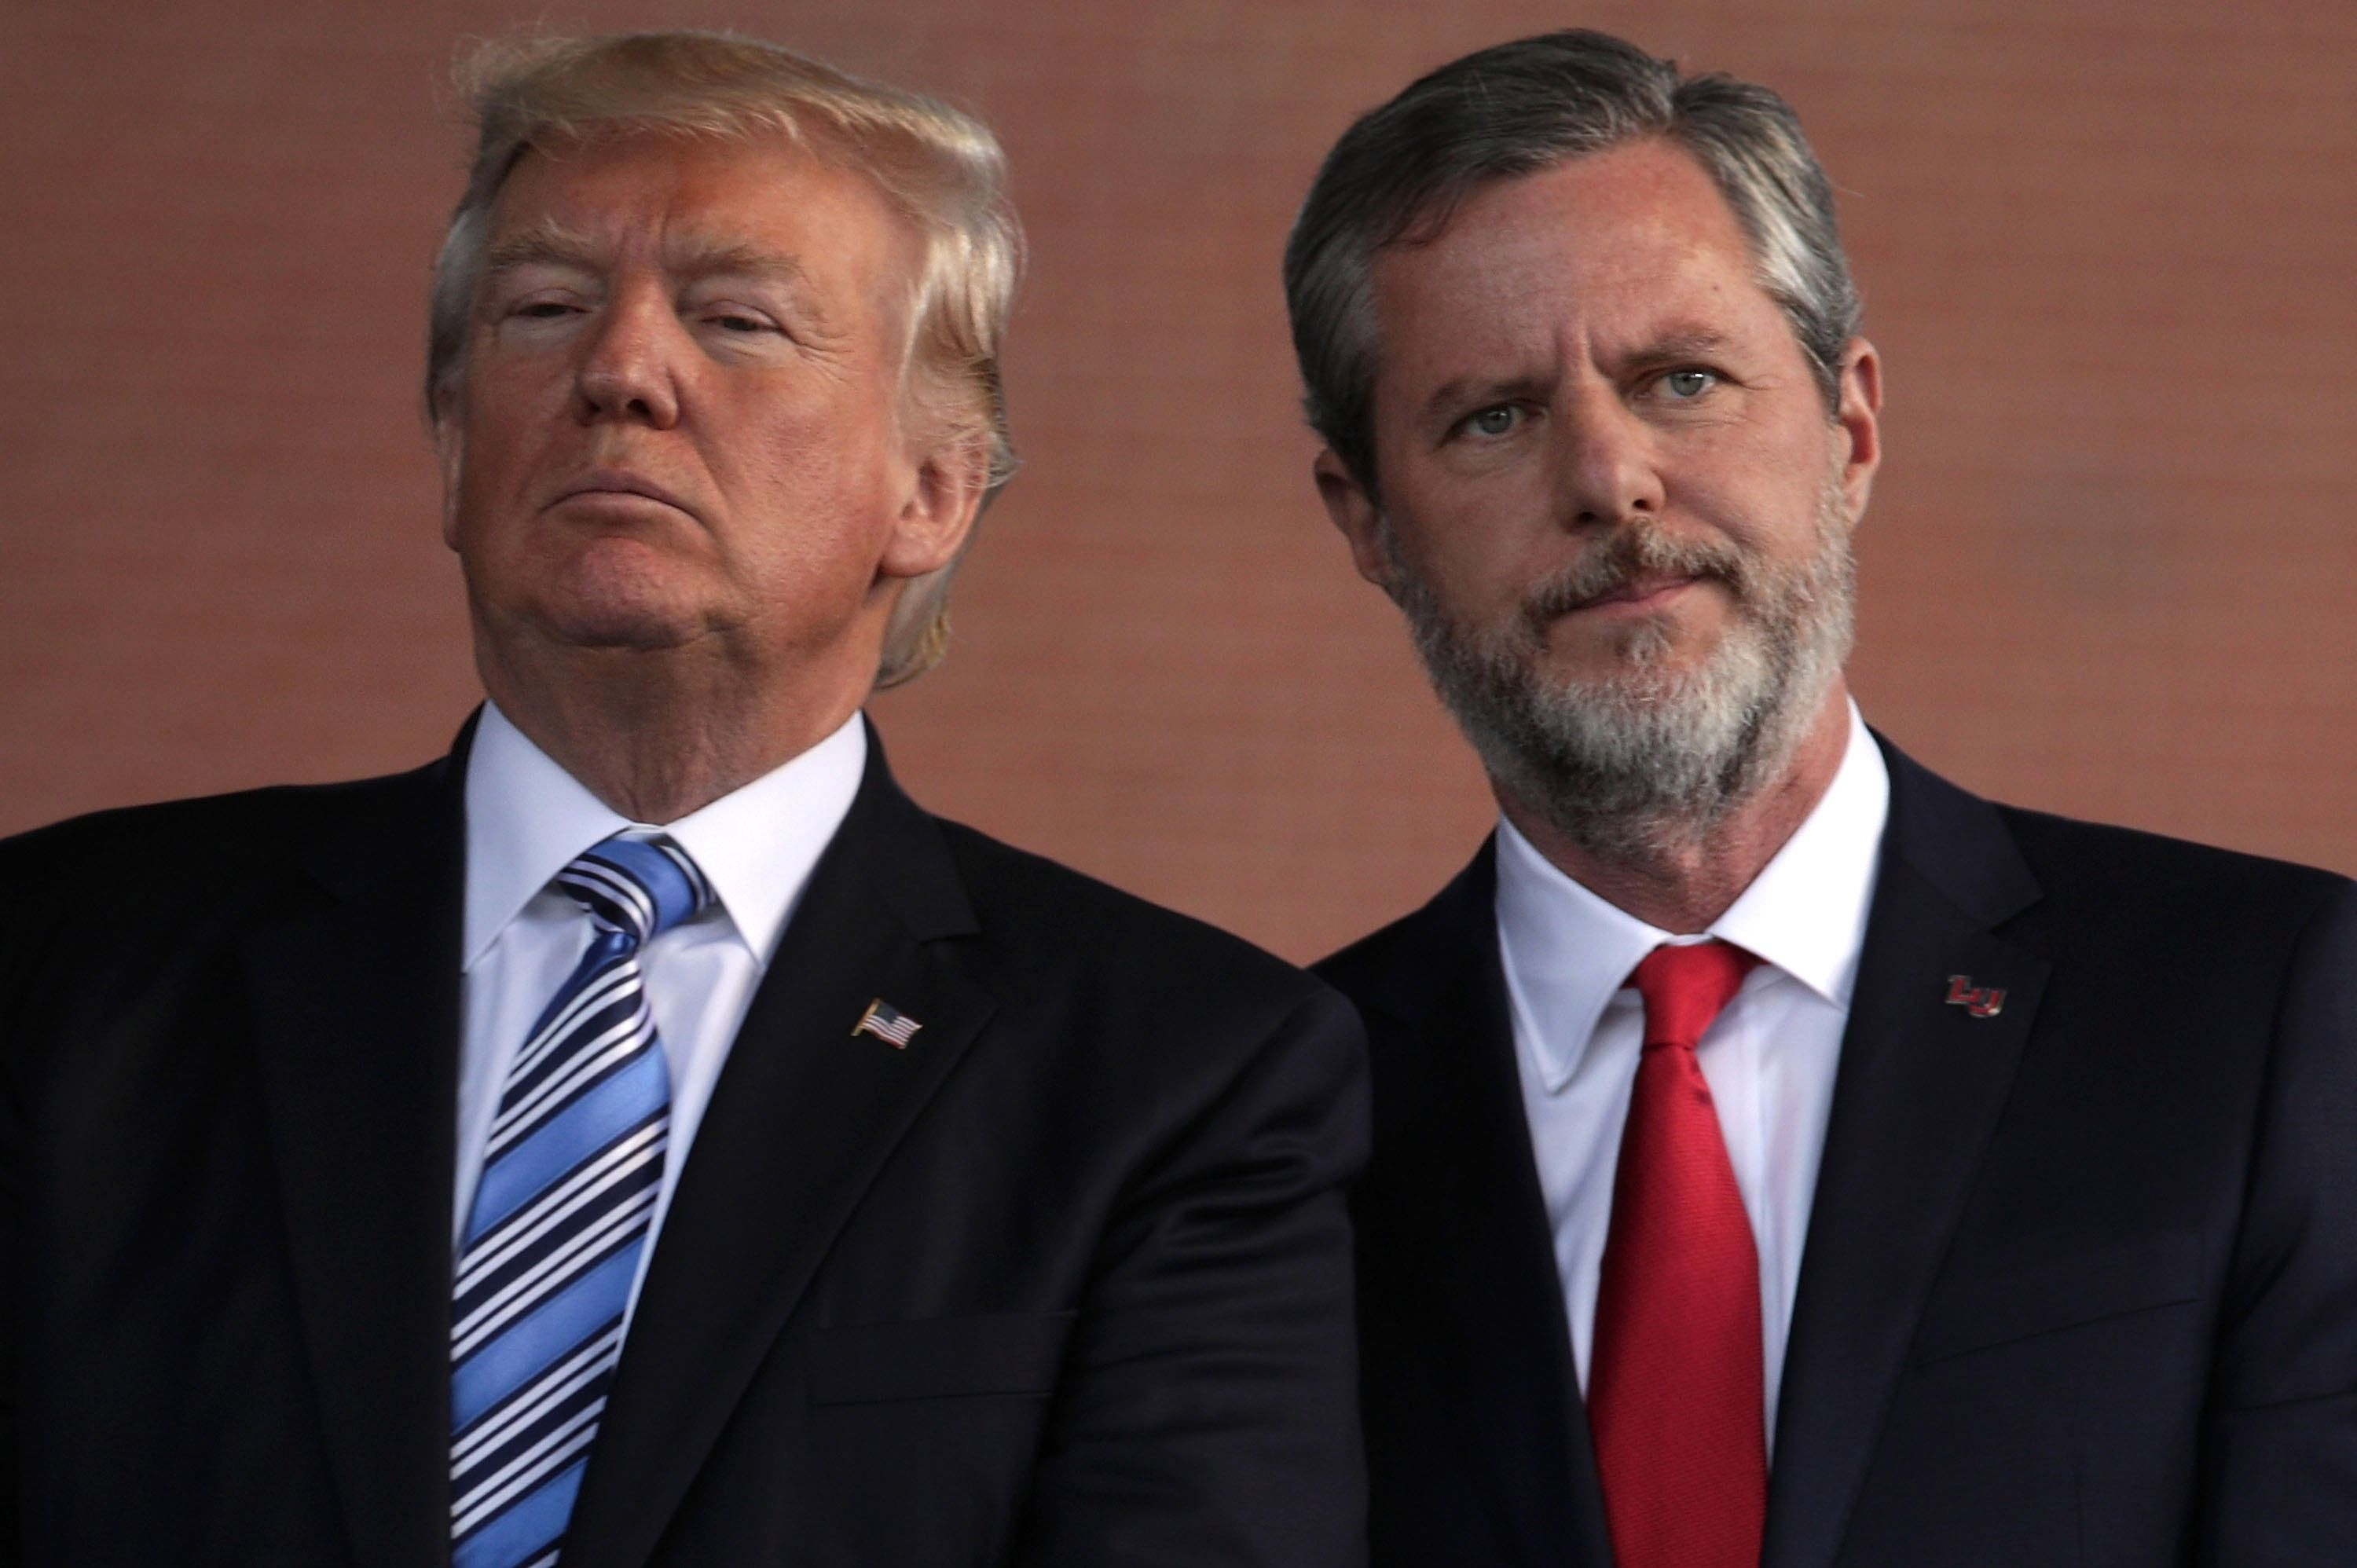 Jerry Falwell Jr. Calls Hitler A 'Progressive Elite' And Compares Him To Hillary Clinton